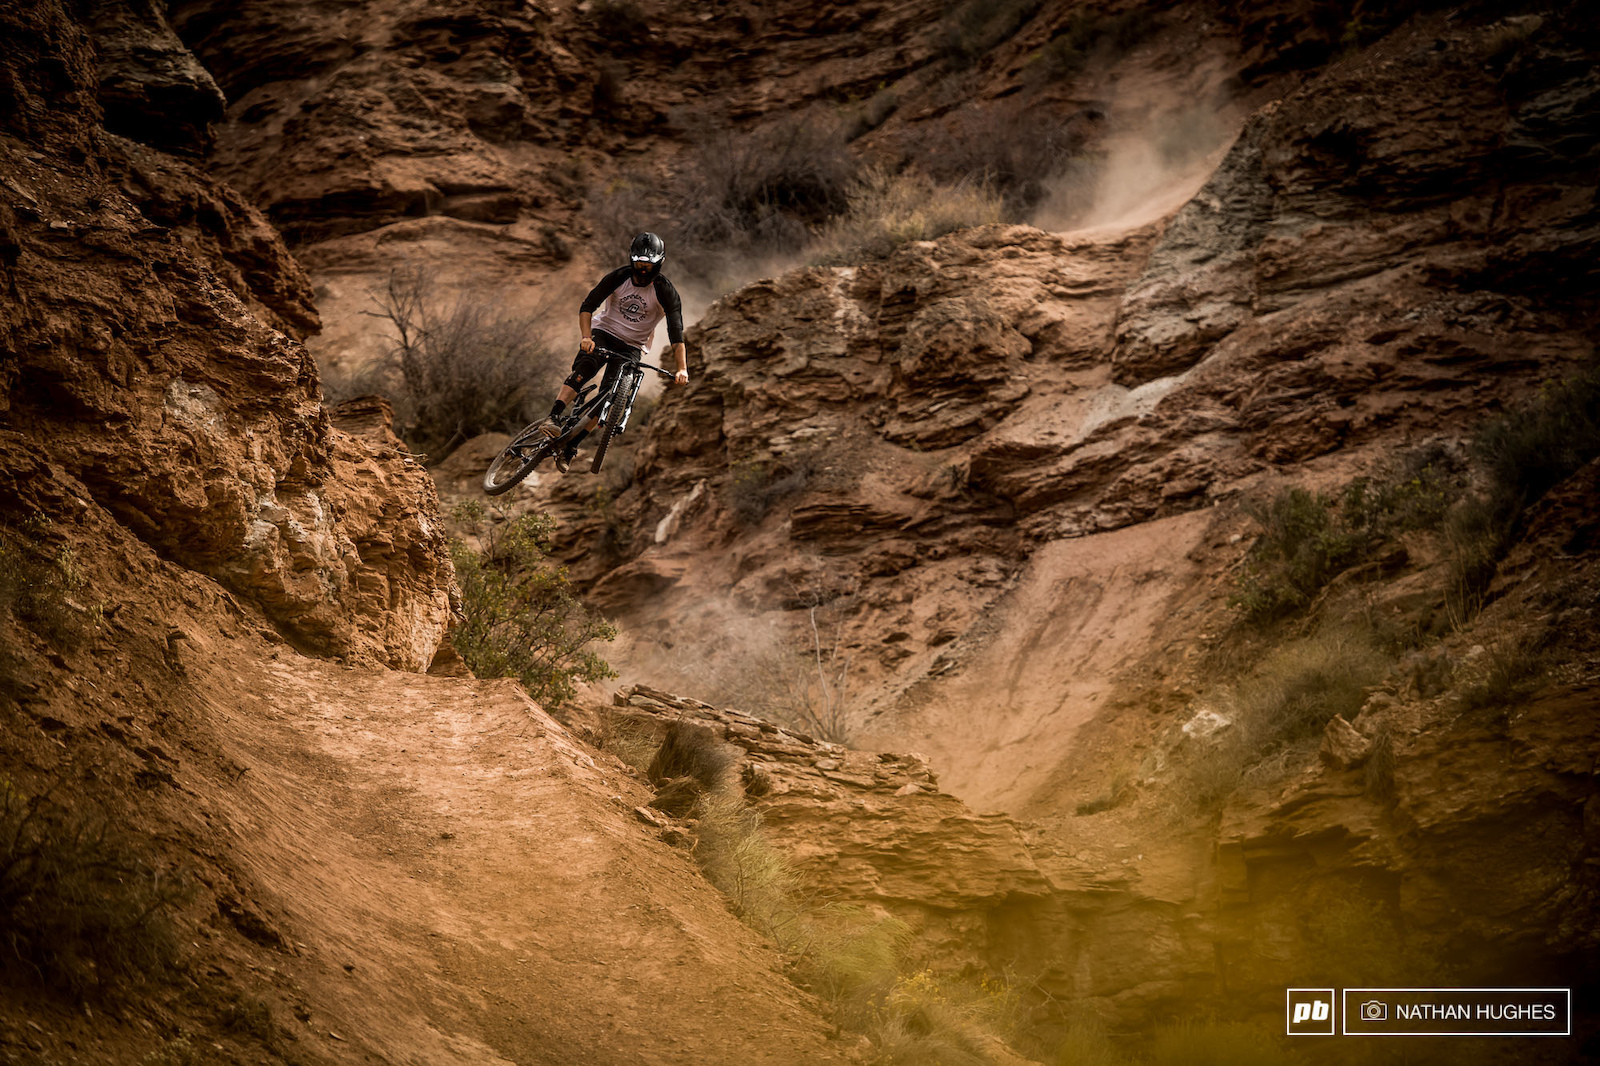 PEF had a sick old time out in the desert this week and was stoked to secure his return invite by hitting the top 10.